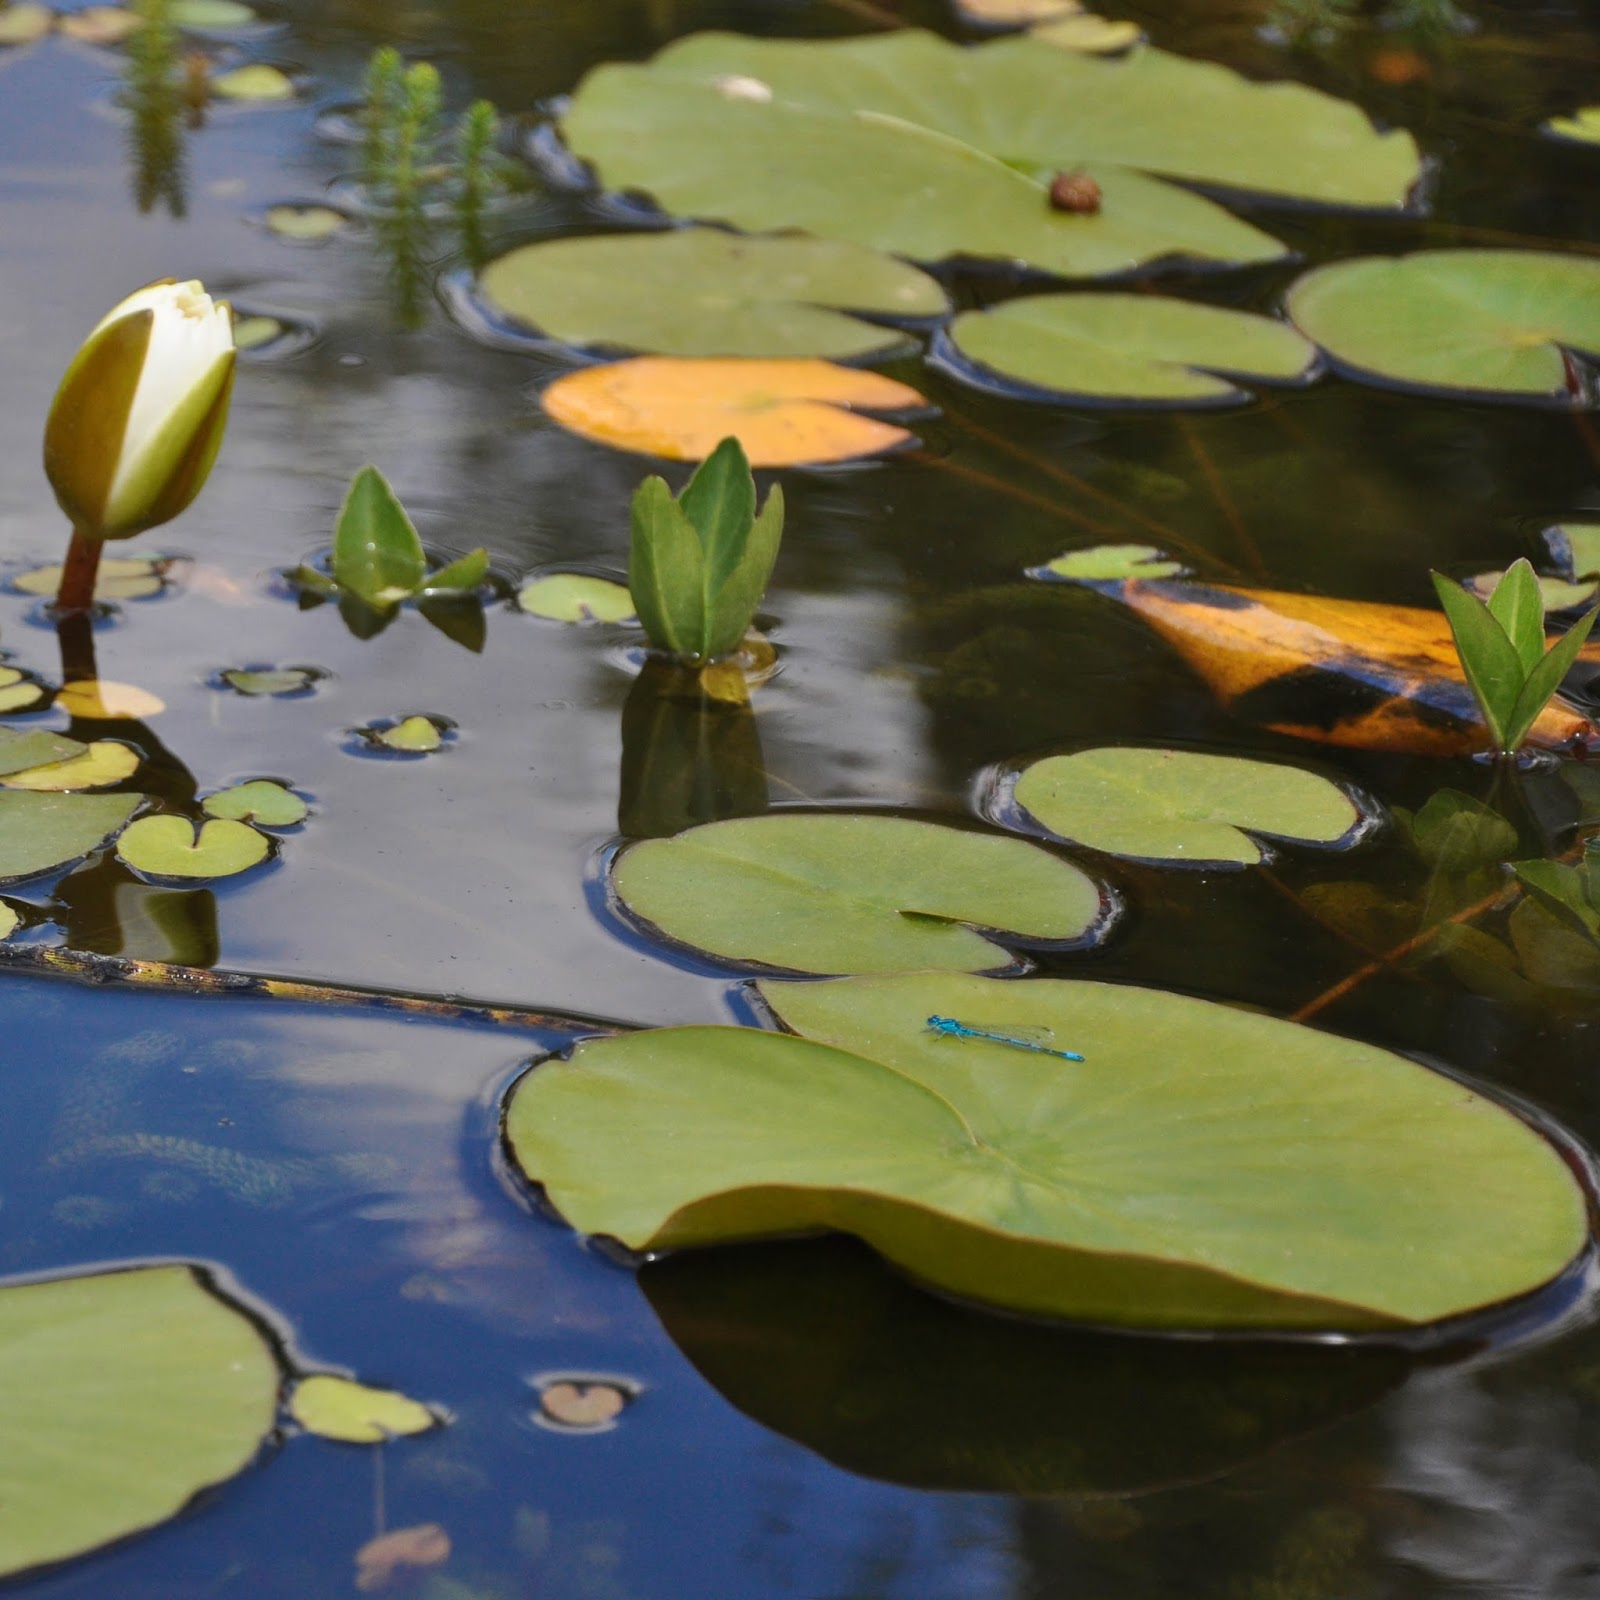 Water lillies, Designer Gardens, The Butterfly World Project, St. Albans, Herts, UK